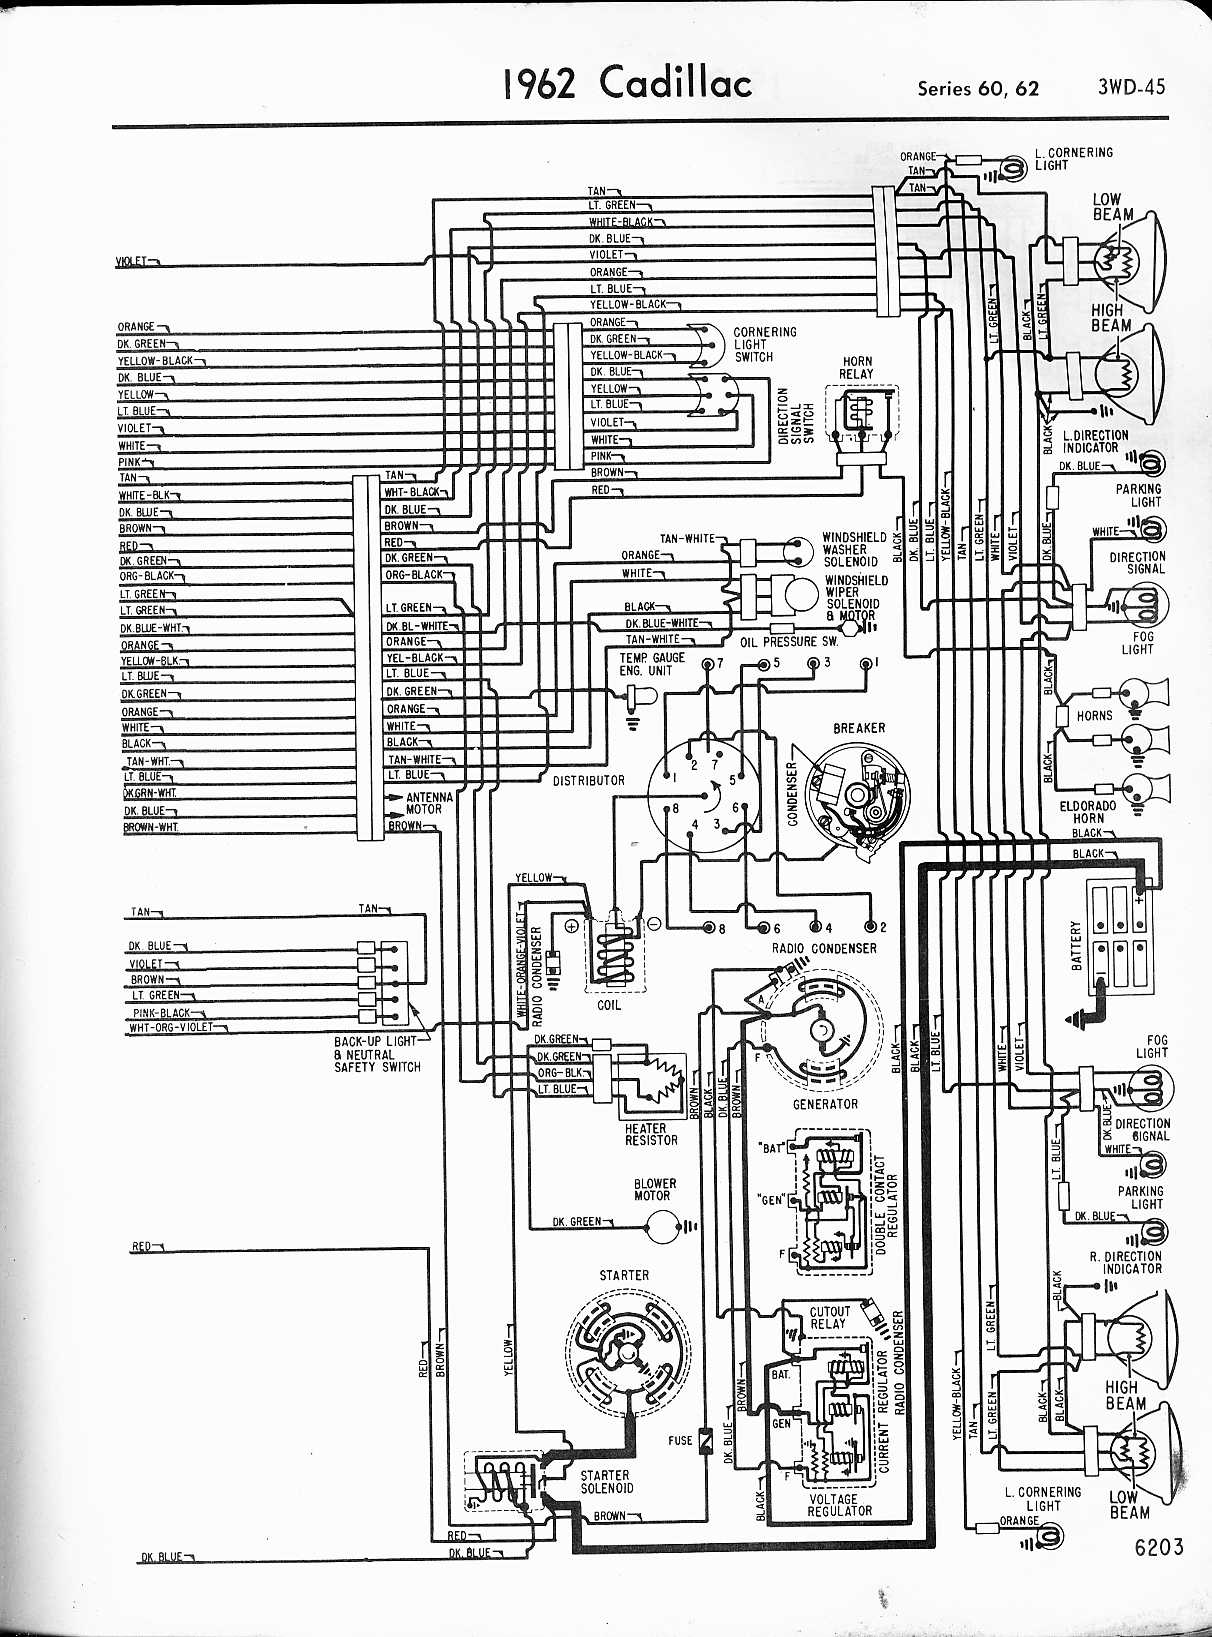 1965 Cadillac Wiring Diagram Opinions About Corvair Engine 1961 390 Vacuum Hose Deville